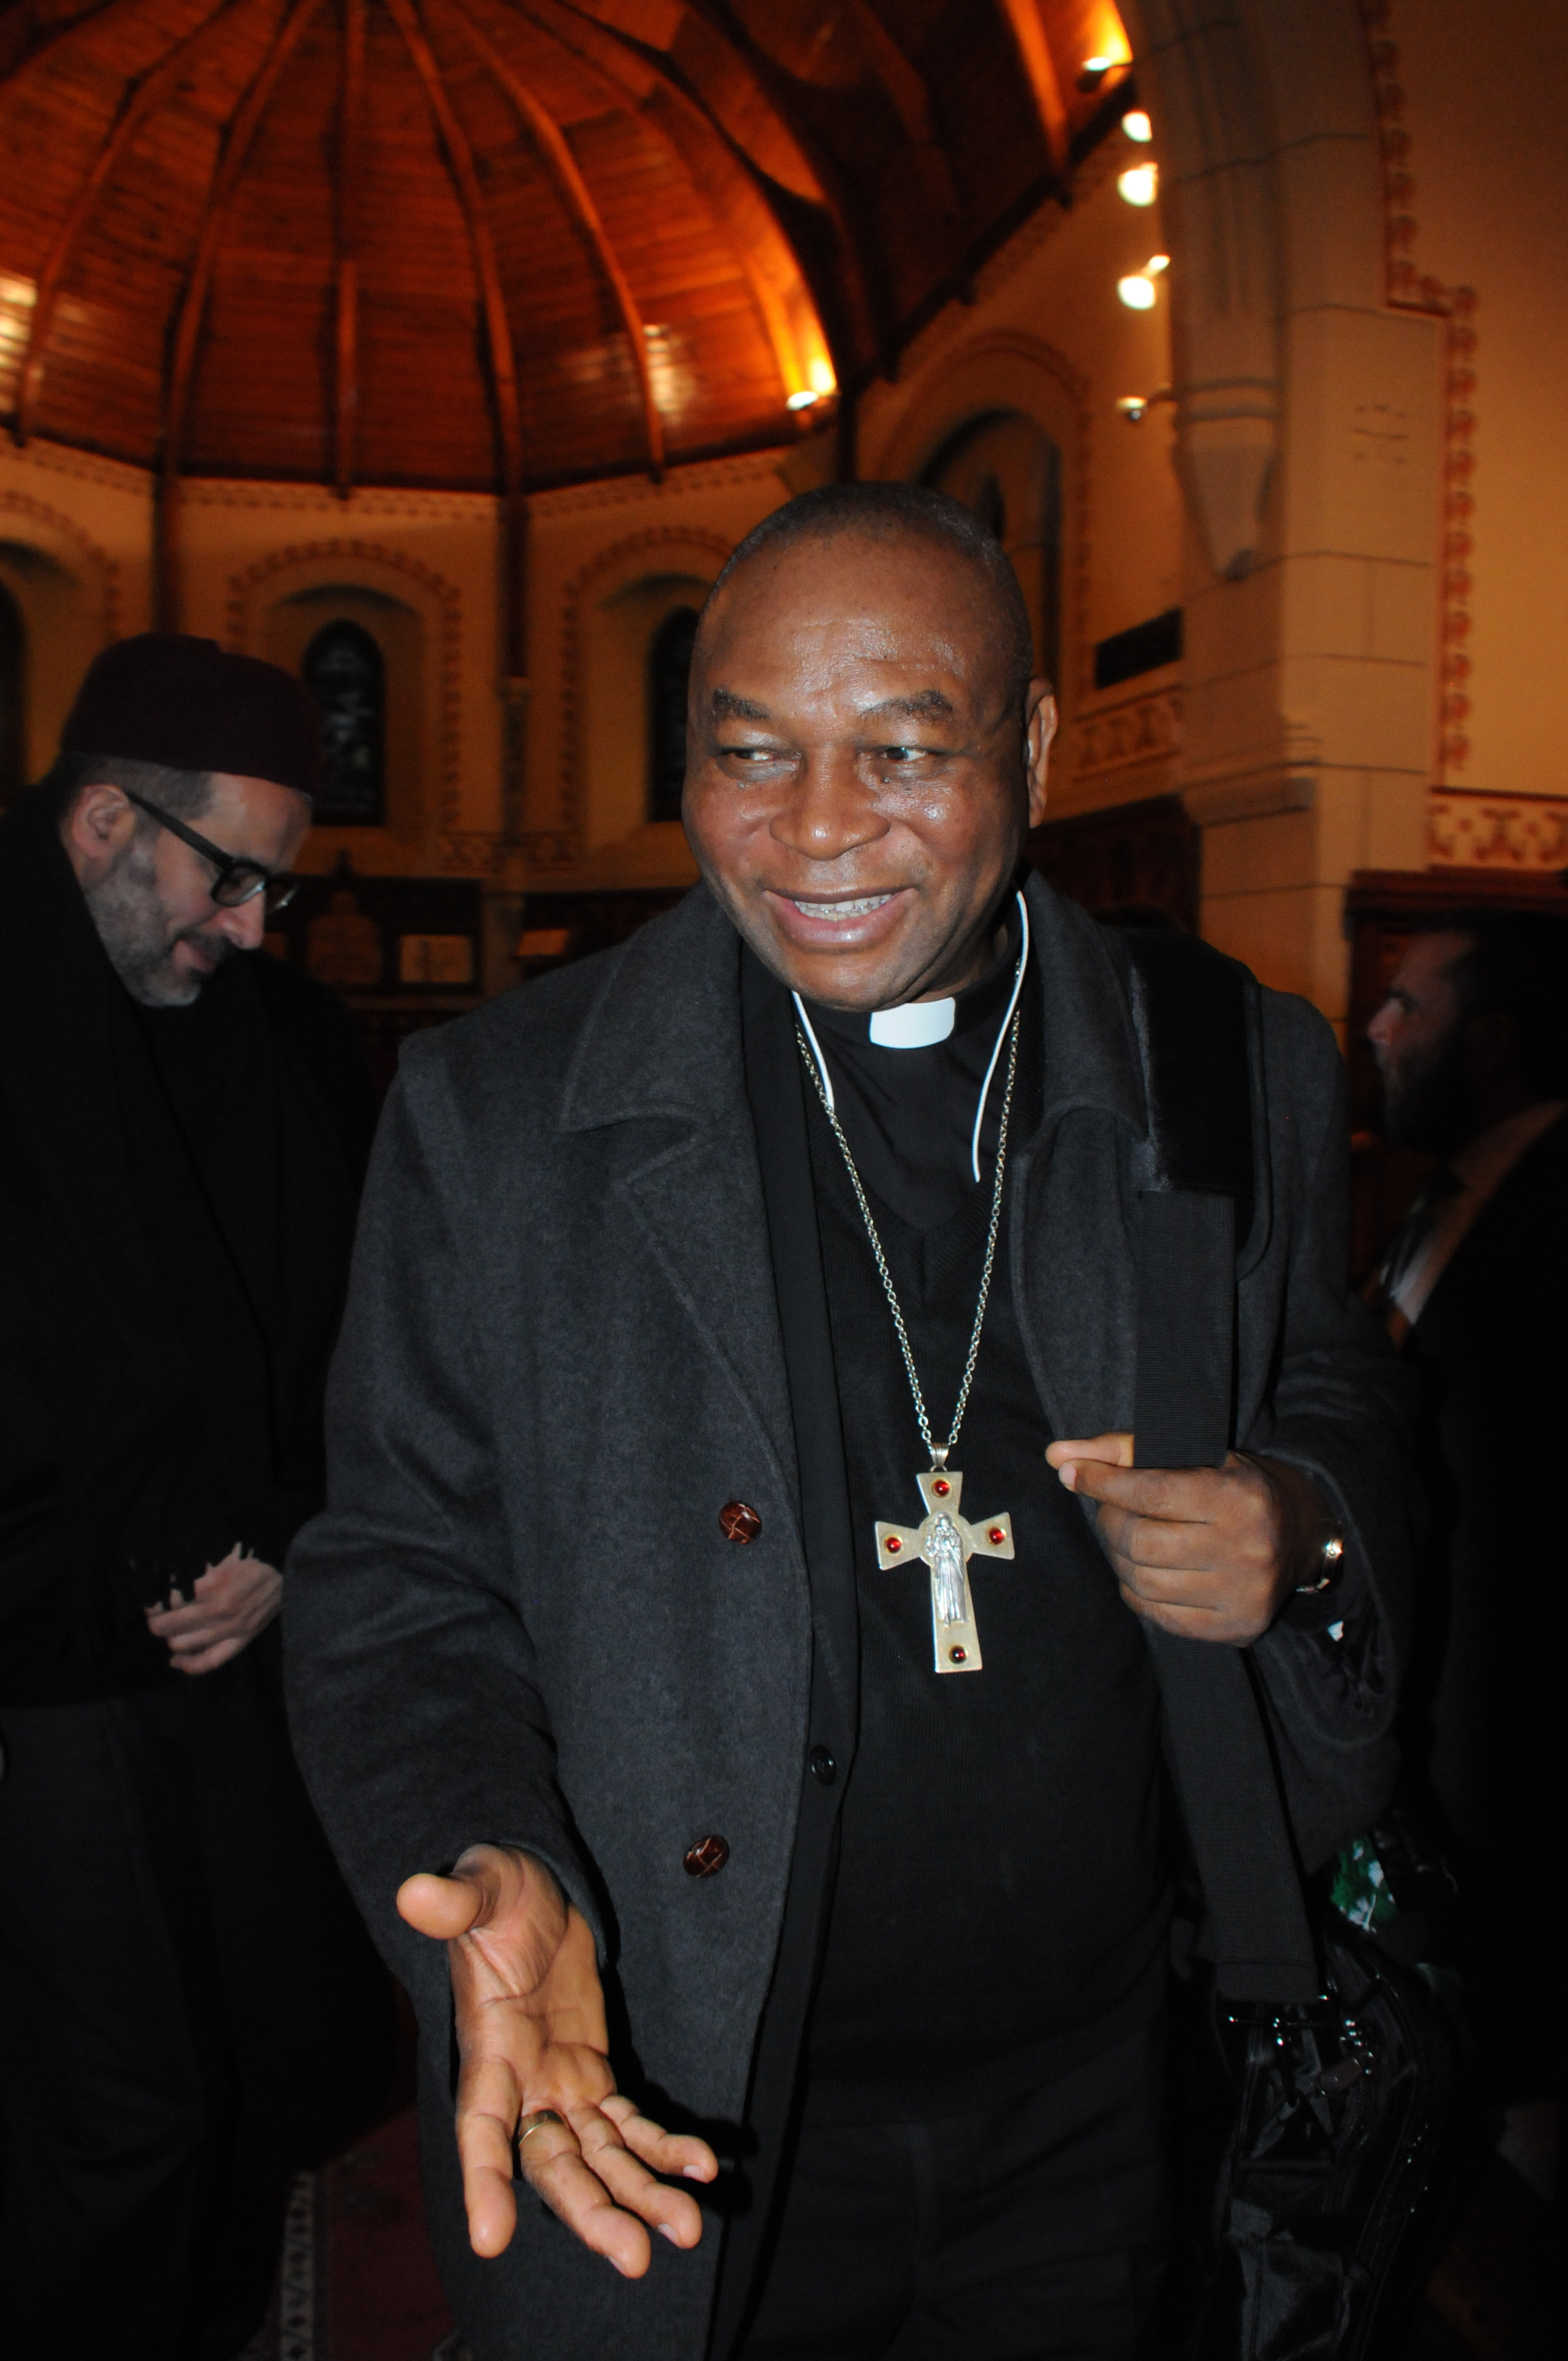 Cardinal John O. Onaiyekan, Cardinal and Roman Catholic Archbishop of Abuja, Catholic Archiocese of Abuja